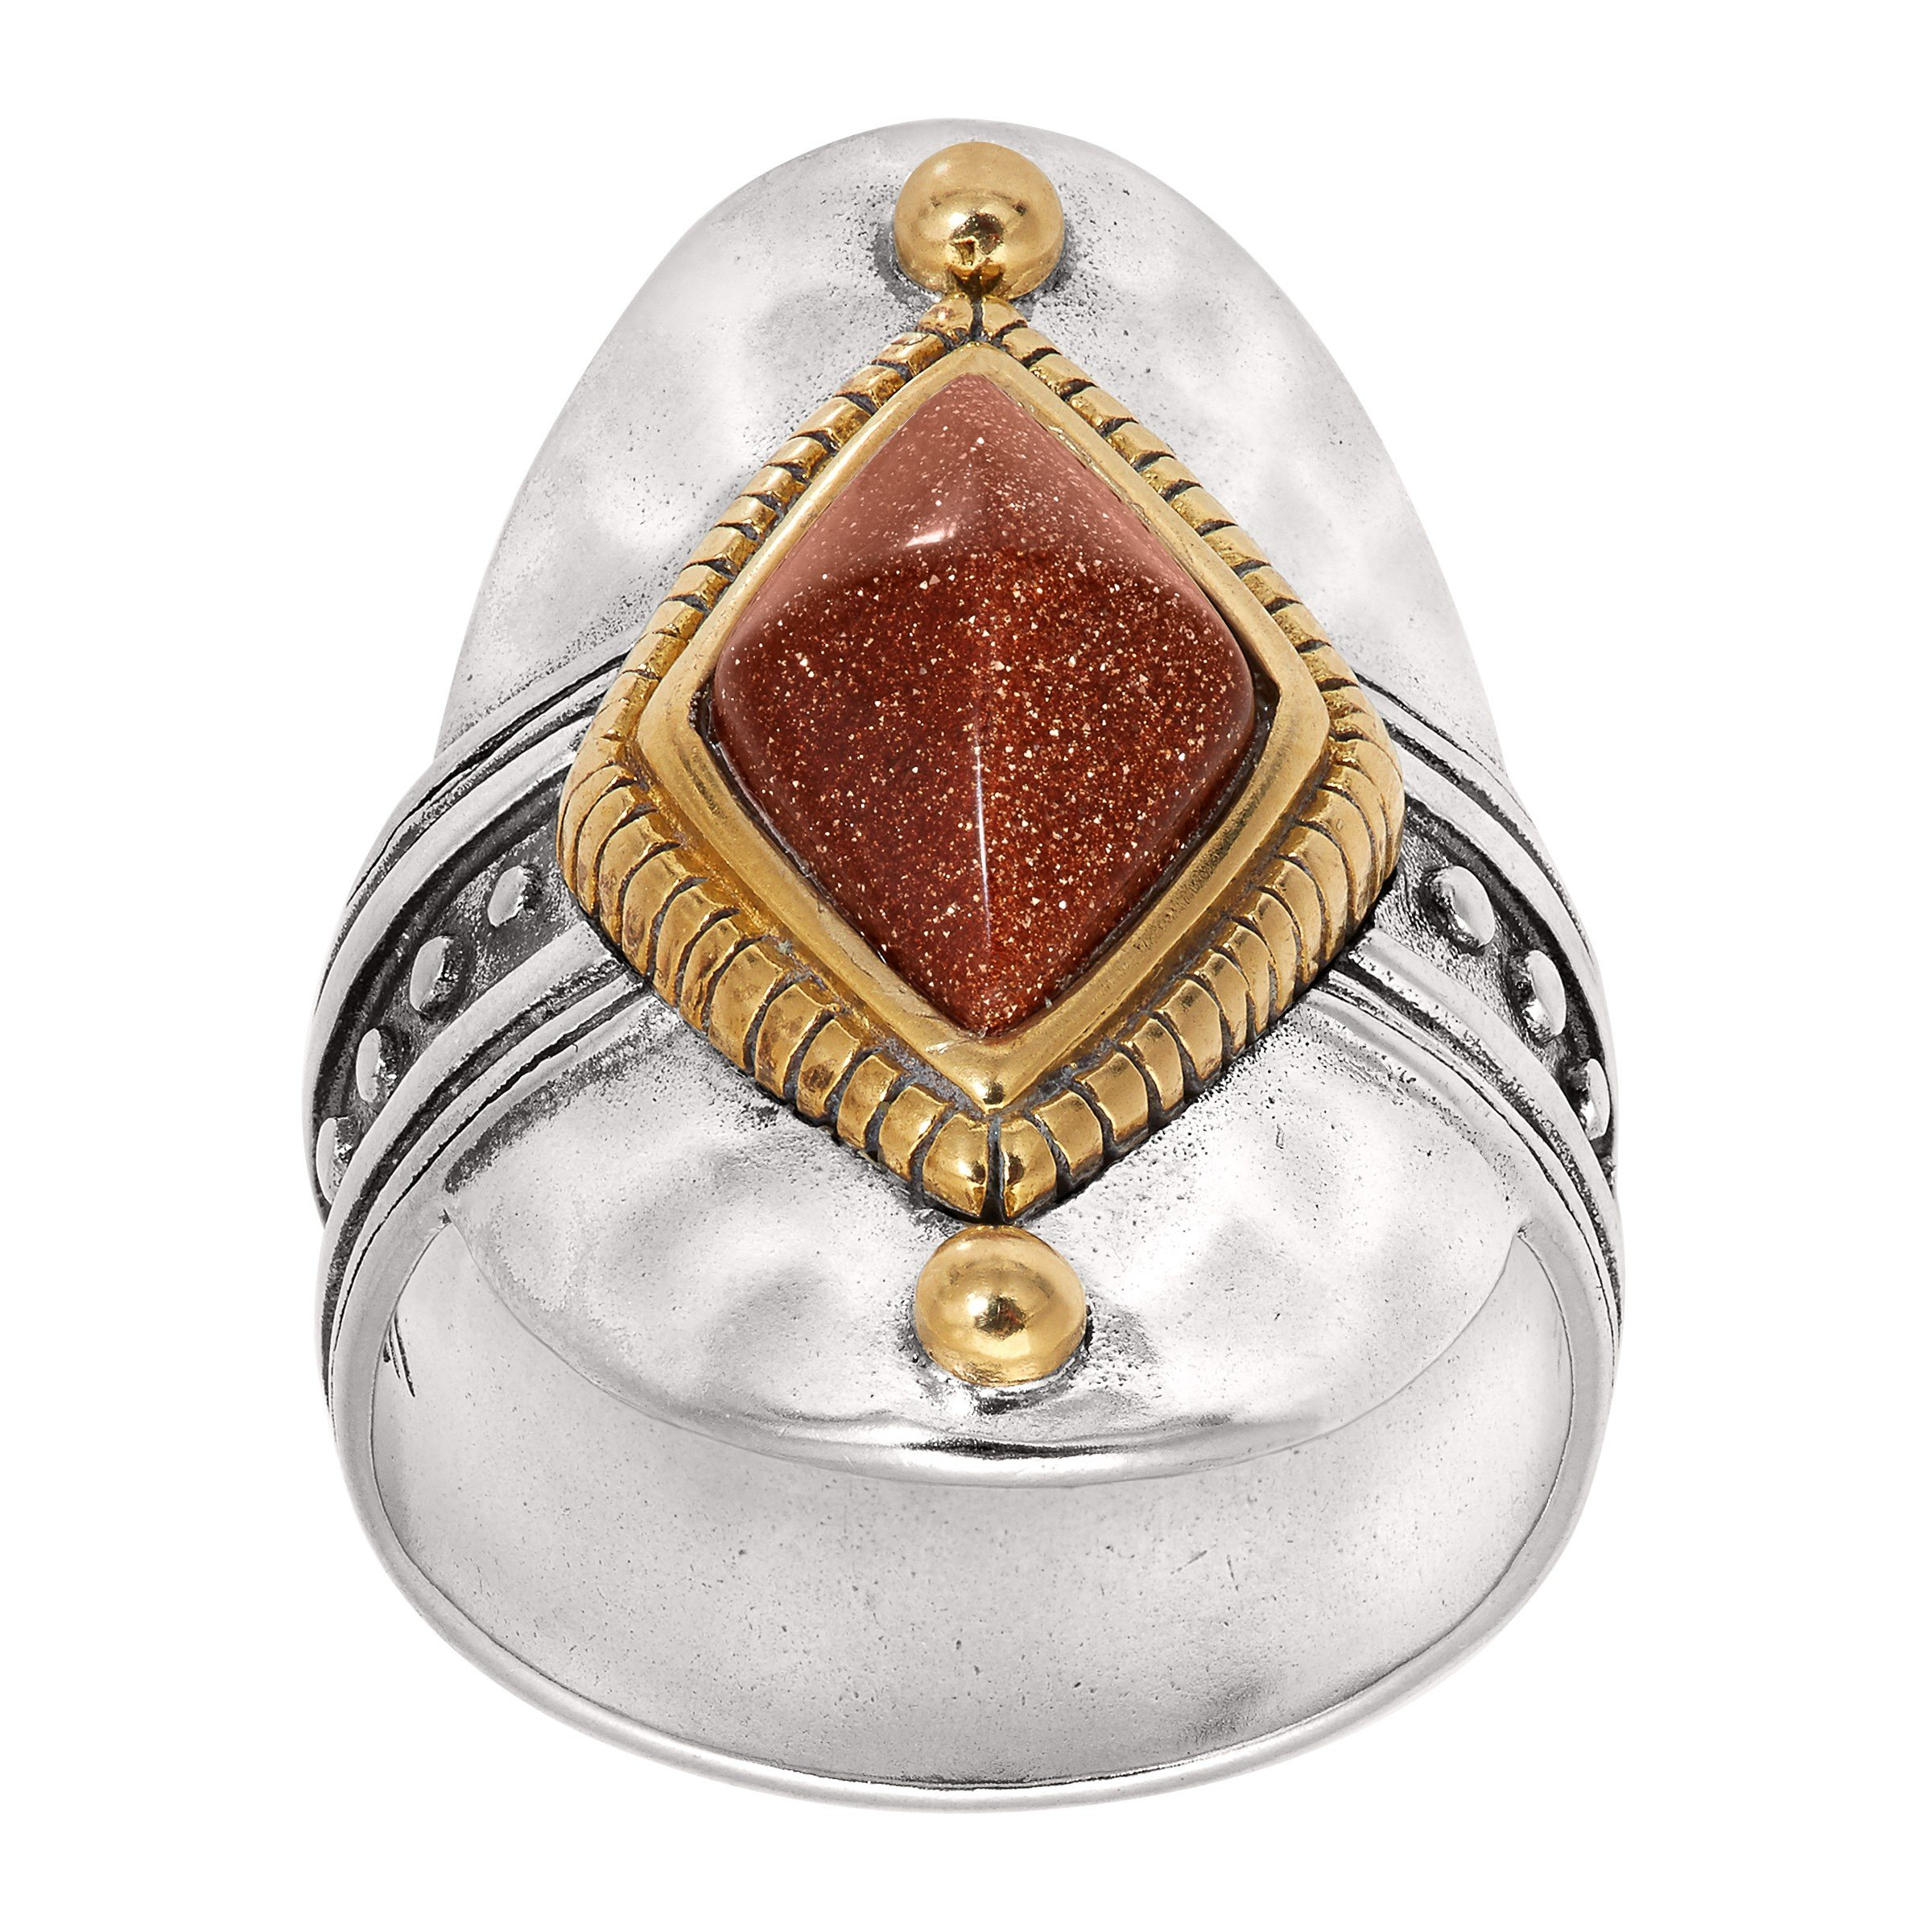 Silpada 'Warm Hues' Brass, Goldstone, and Sterling Silver Ring, Size 11